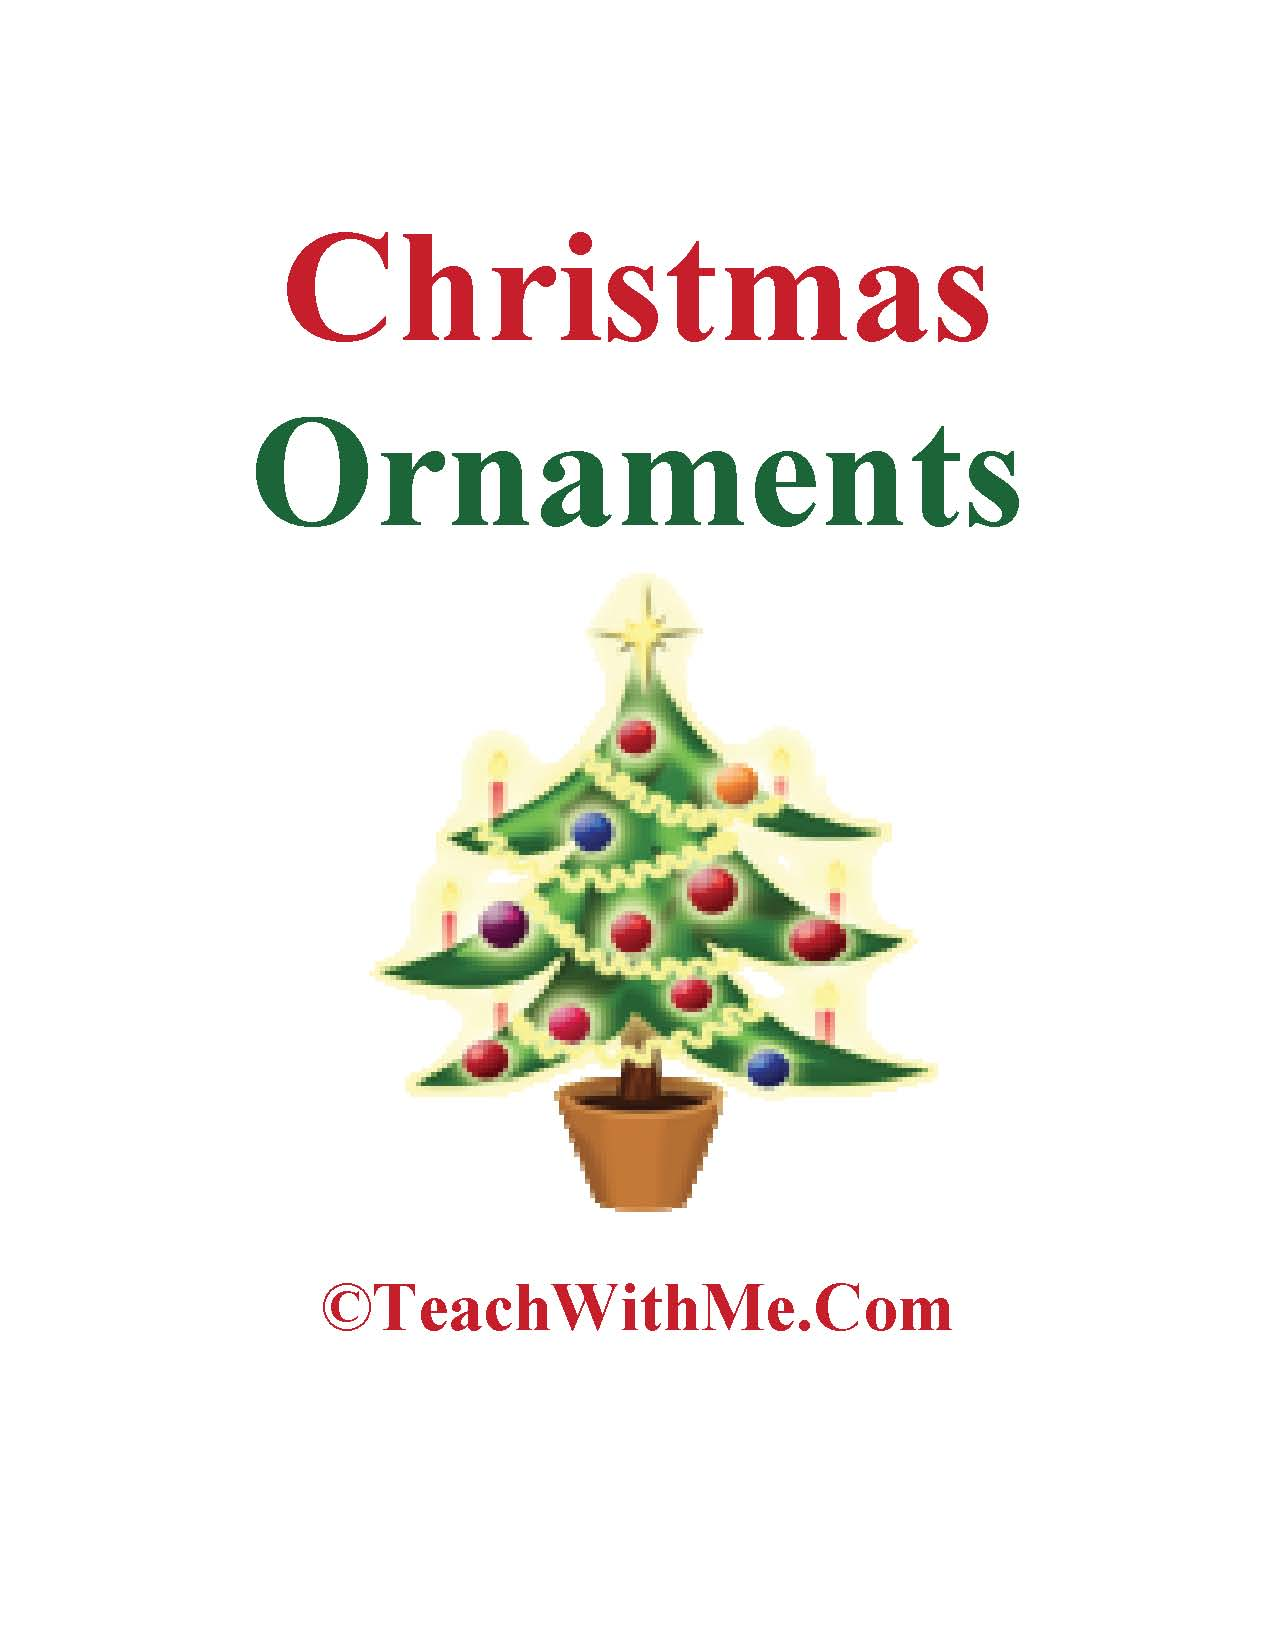 Christmas ornaments, December centers, December bulletin boards, December activities, December gifts, Christmas ornaments, December arts and activities, December lessons, December activities, counting to 10, +1 more activities, bulletin board boarders, December arts and crafts,